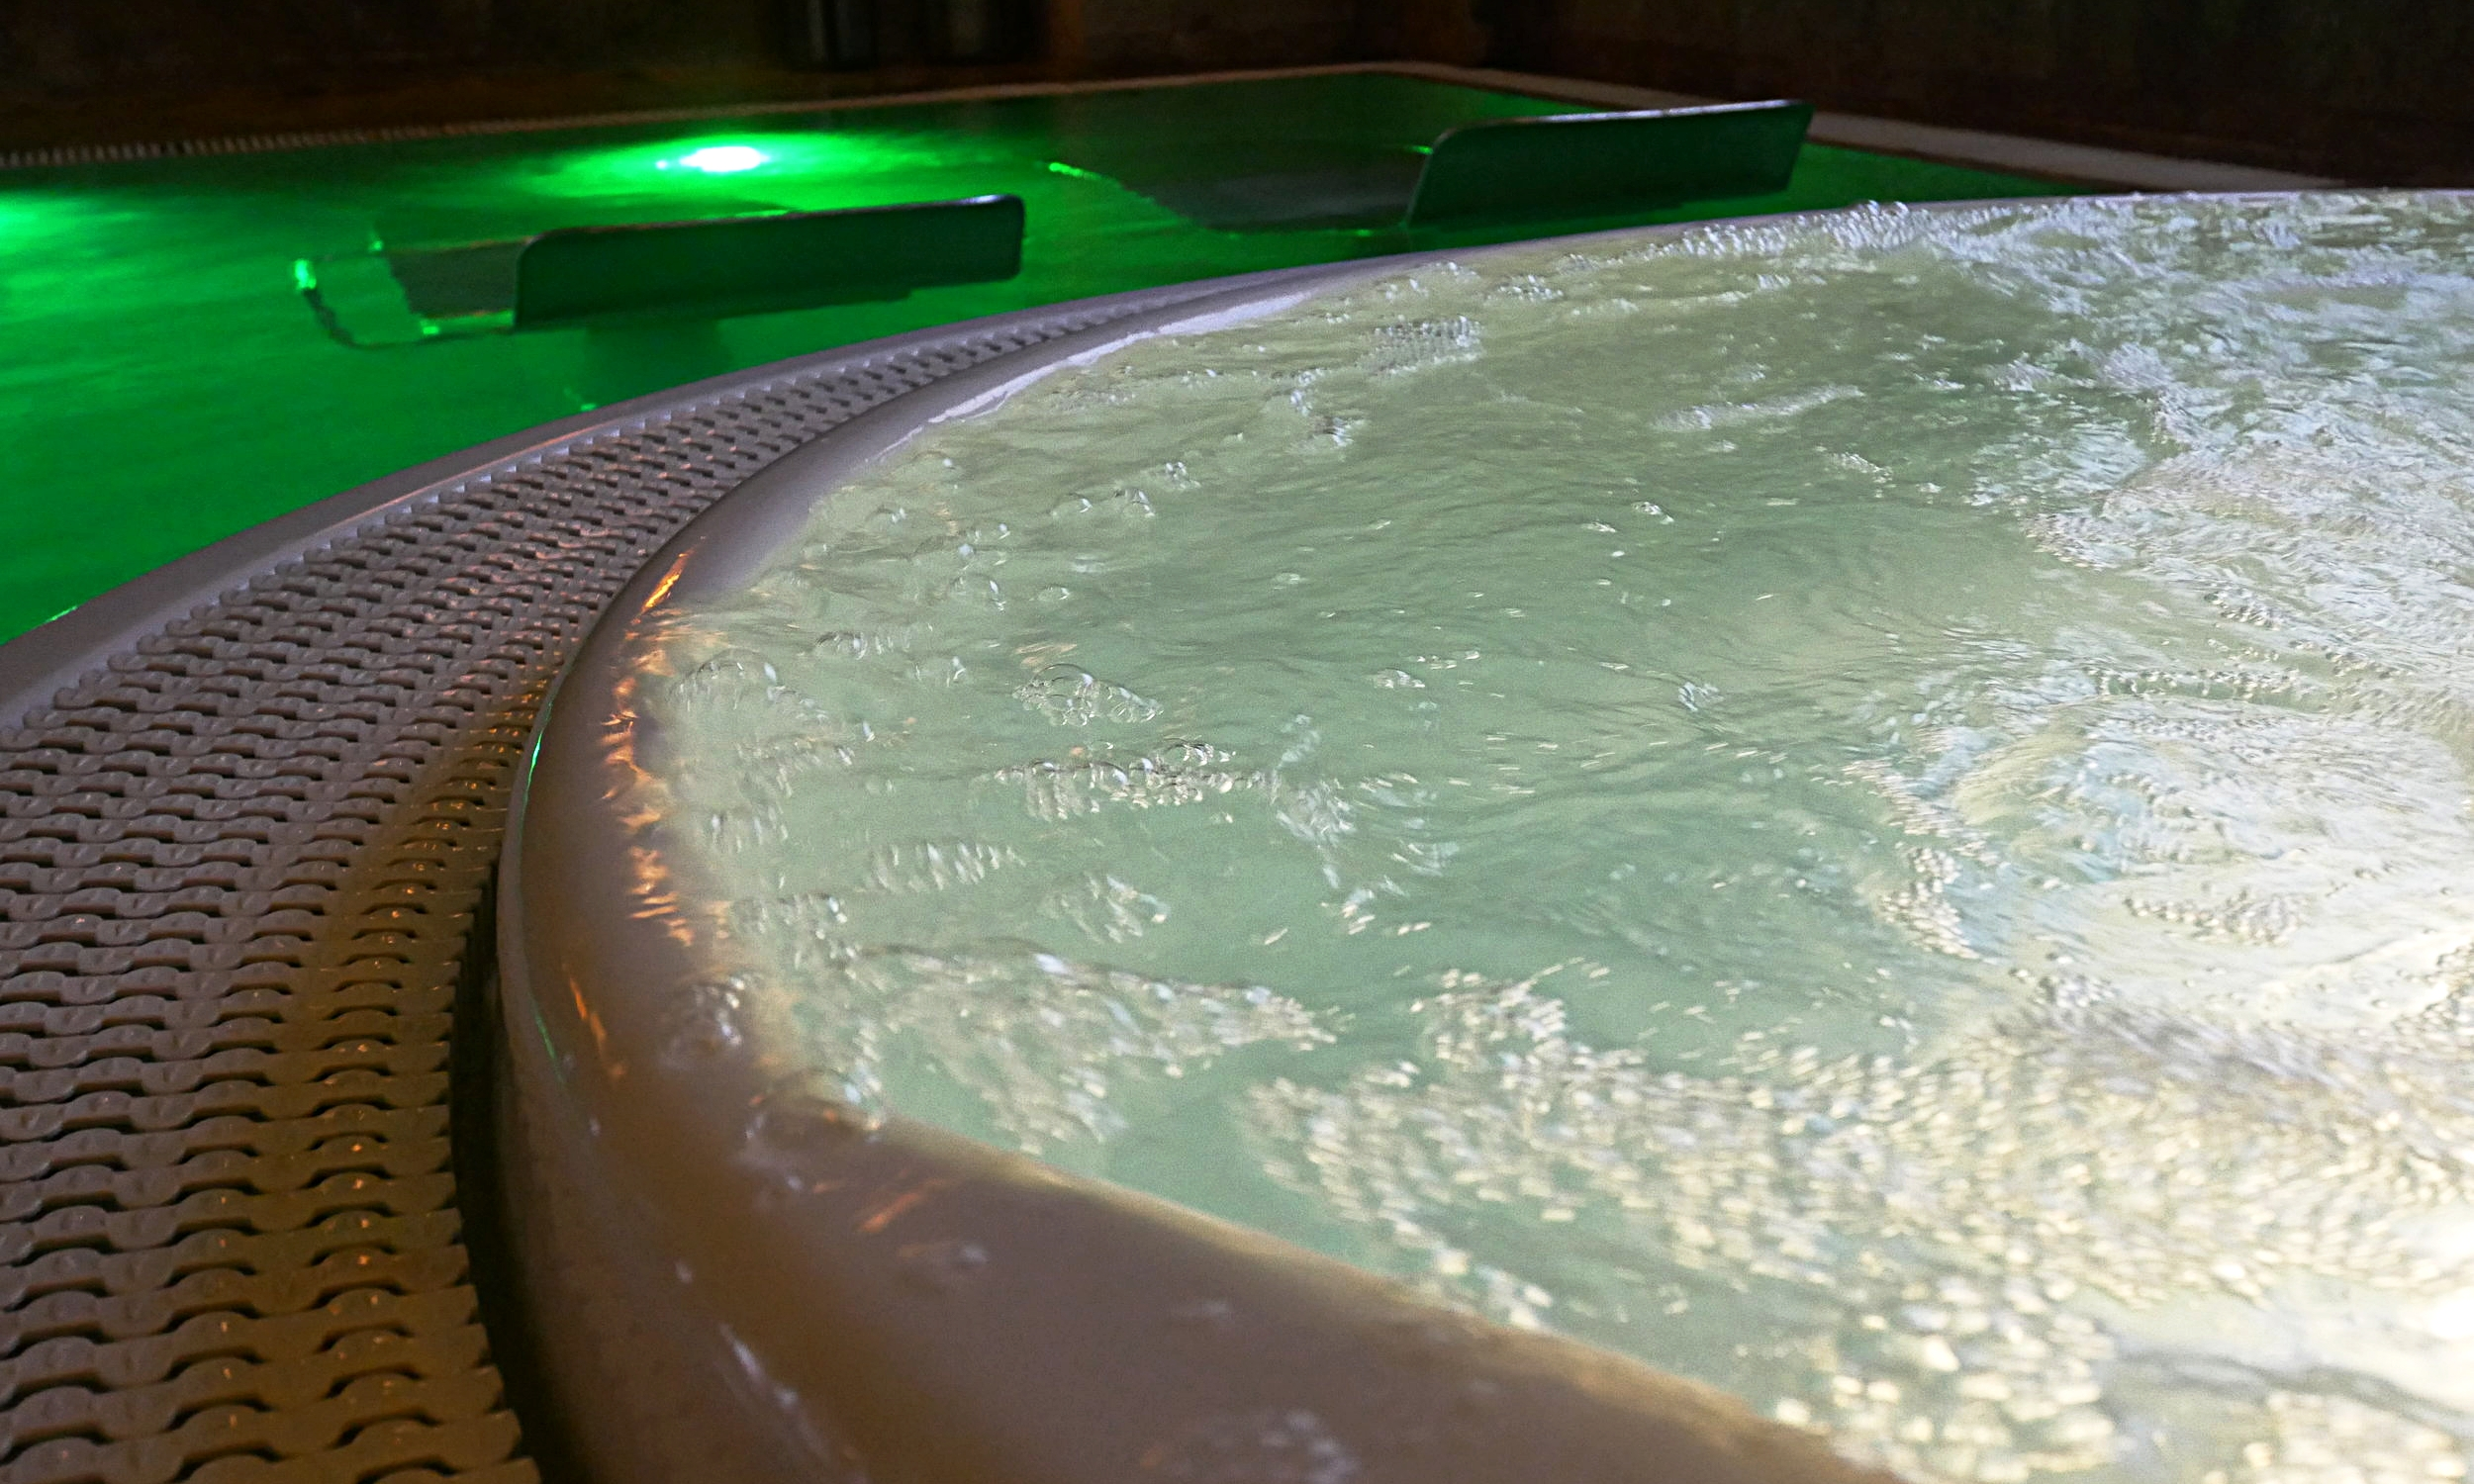 The hydrotherapy room's whirlpool bath